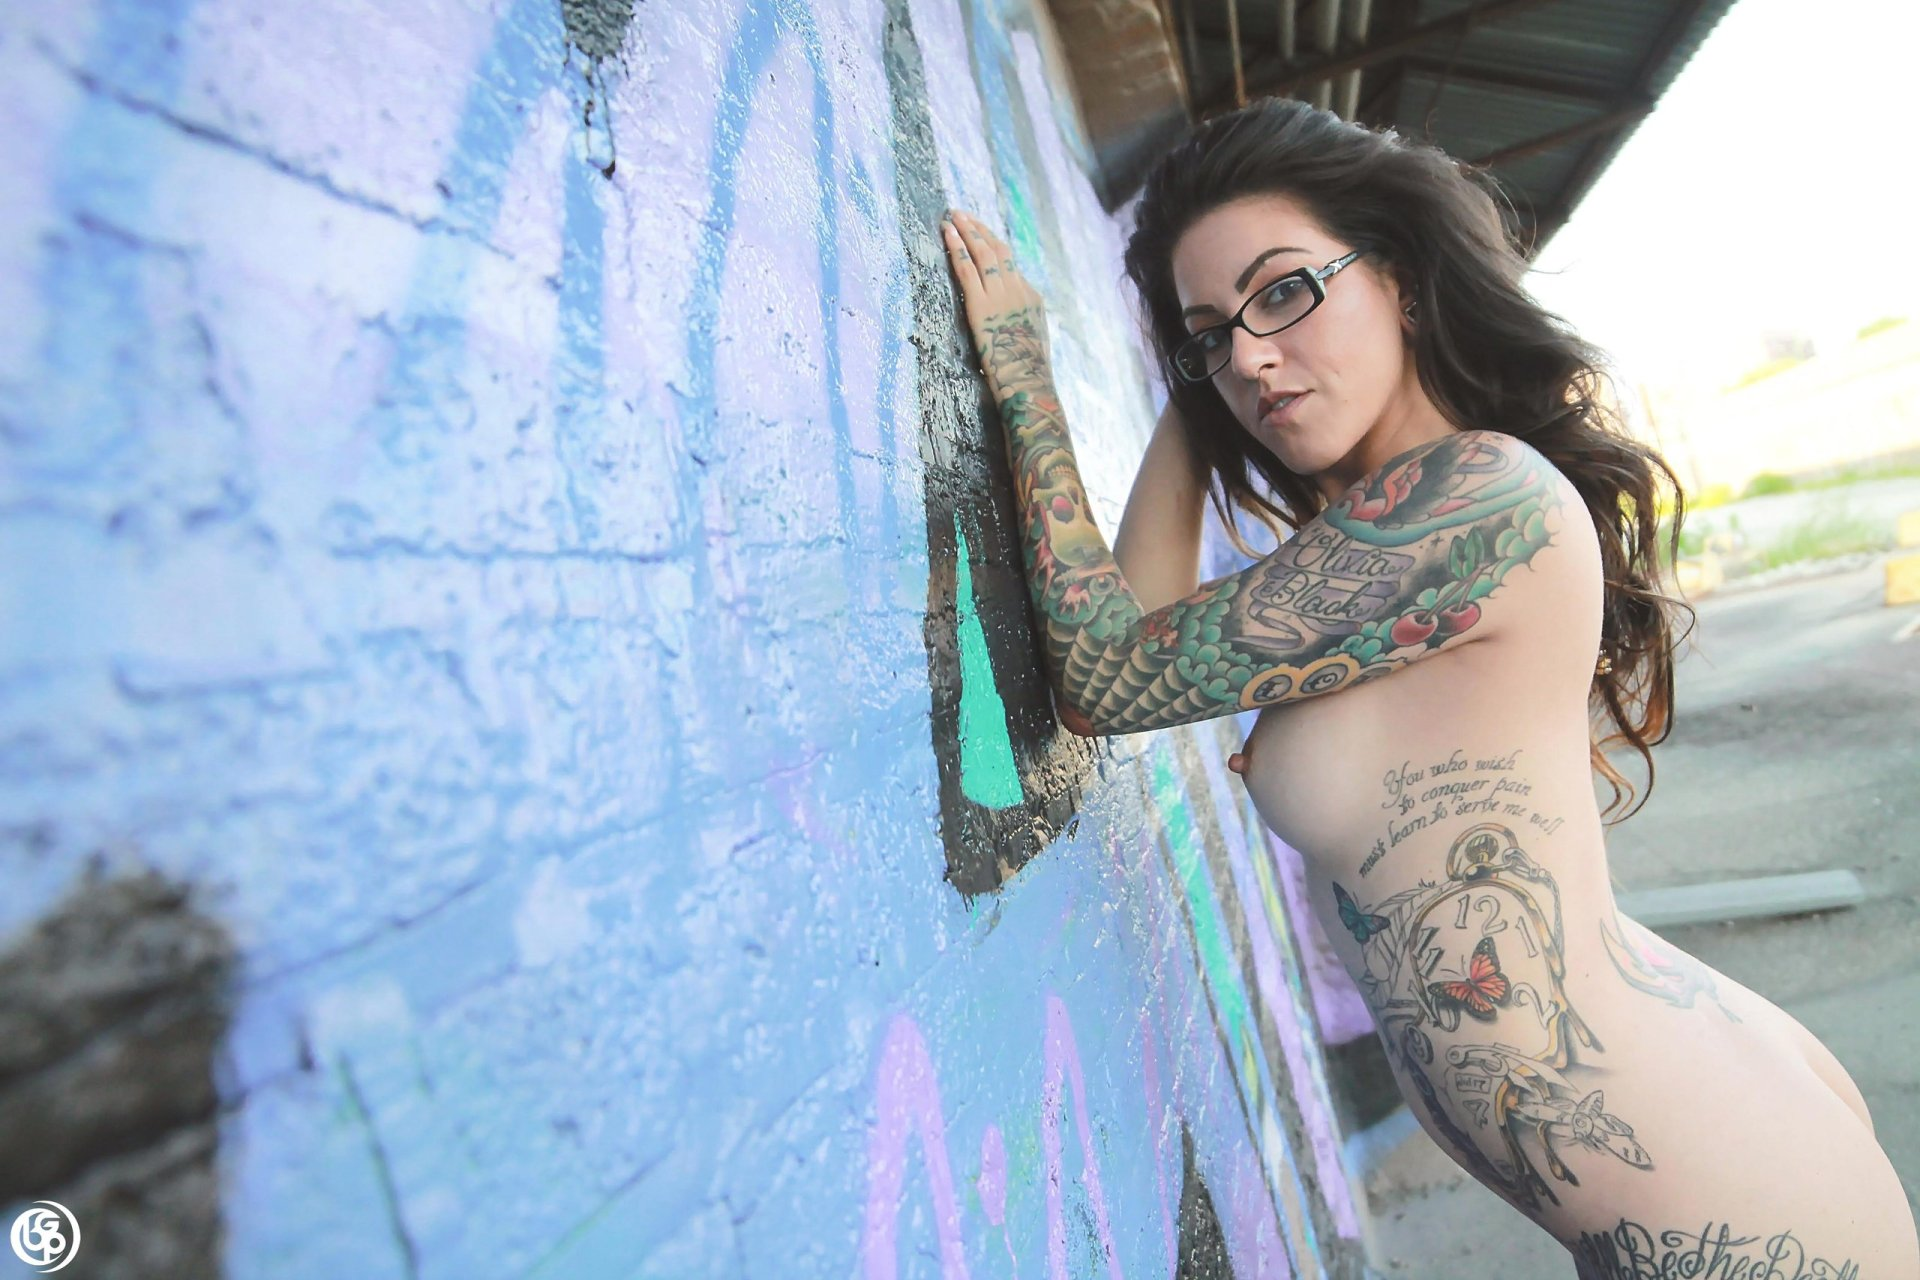 women with tattoos full body nude